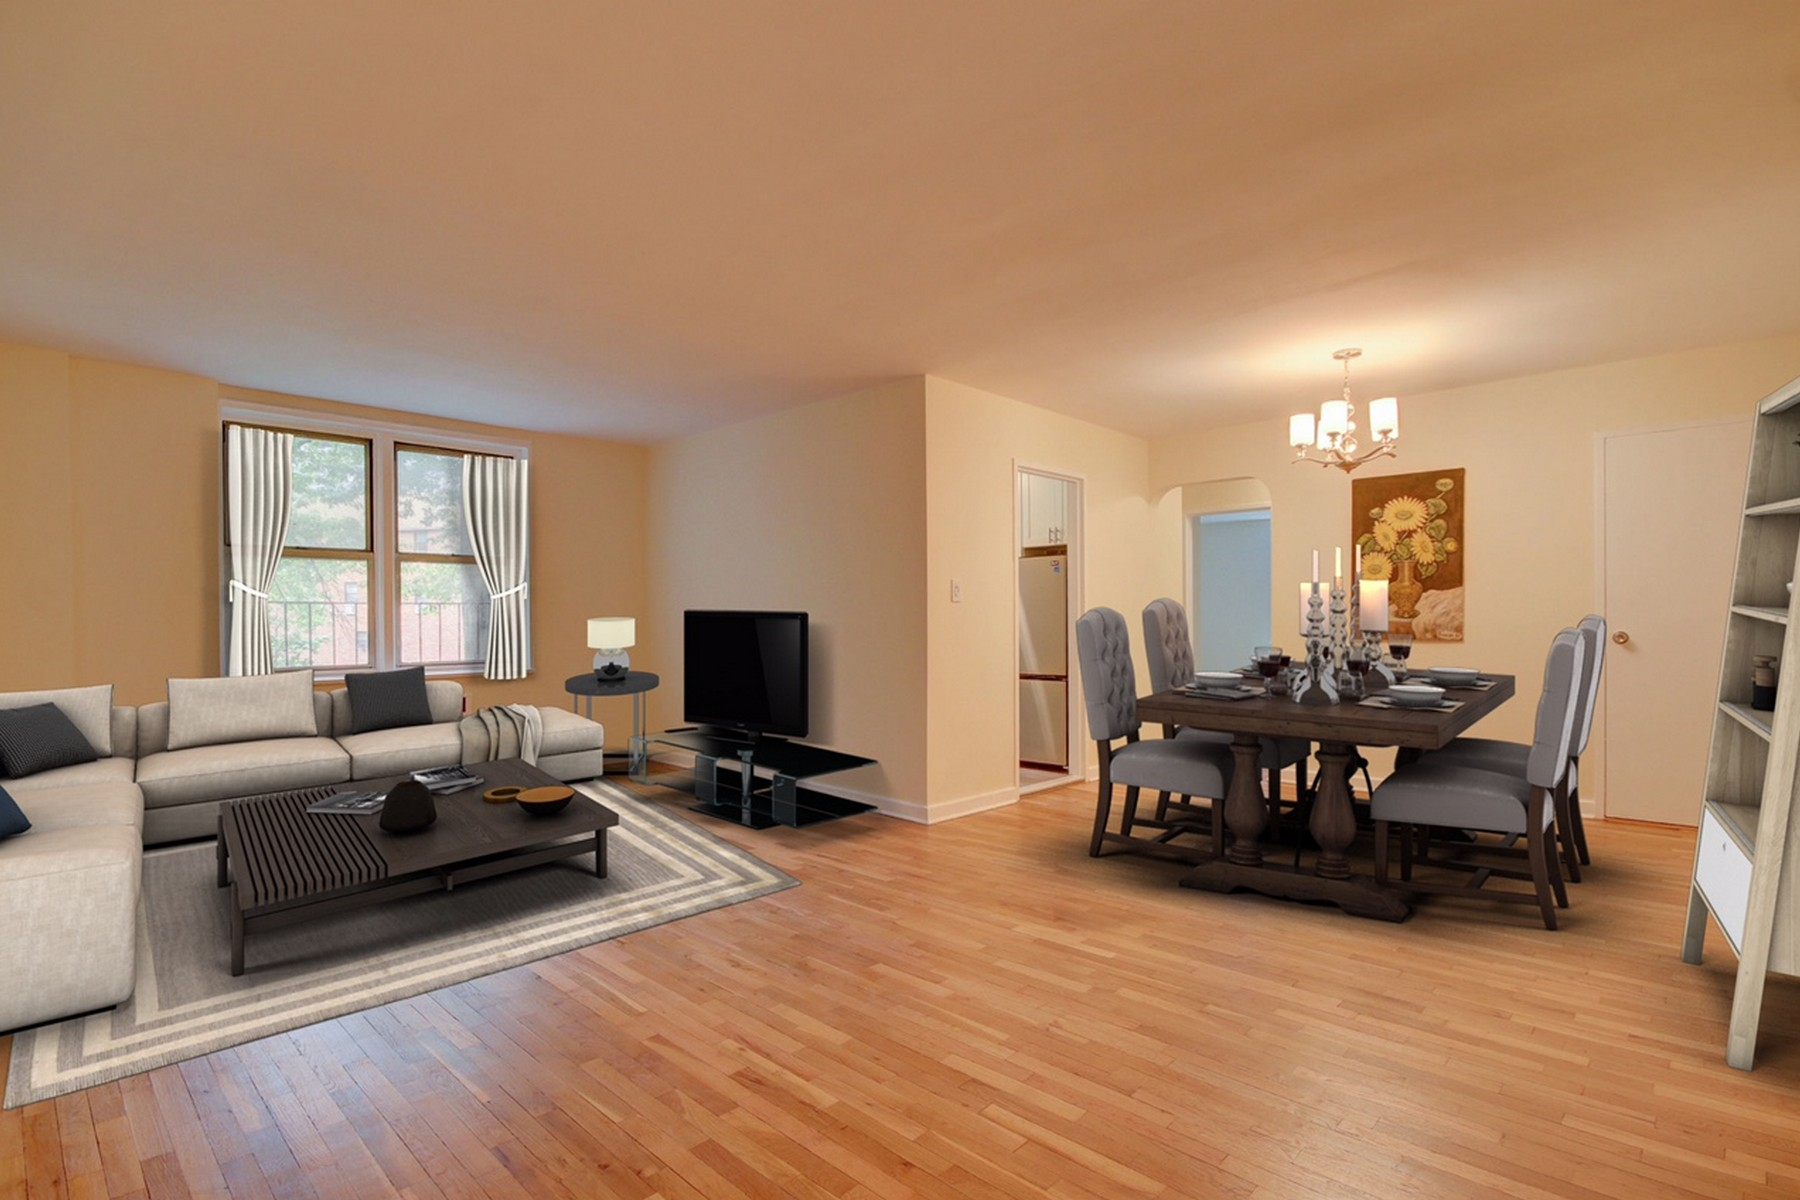 Co-op for Sale at Co-Op 72-81 113 St 2 2L Forest Hills, New York, 11375 United States